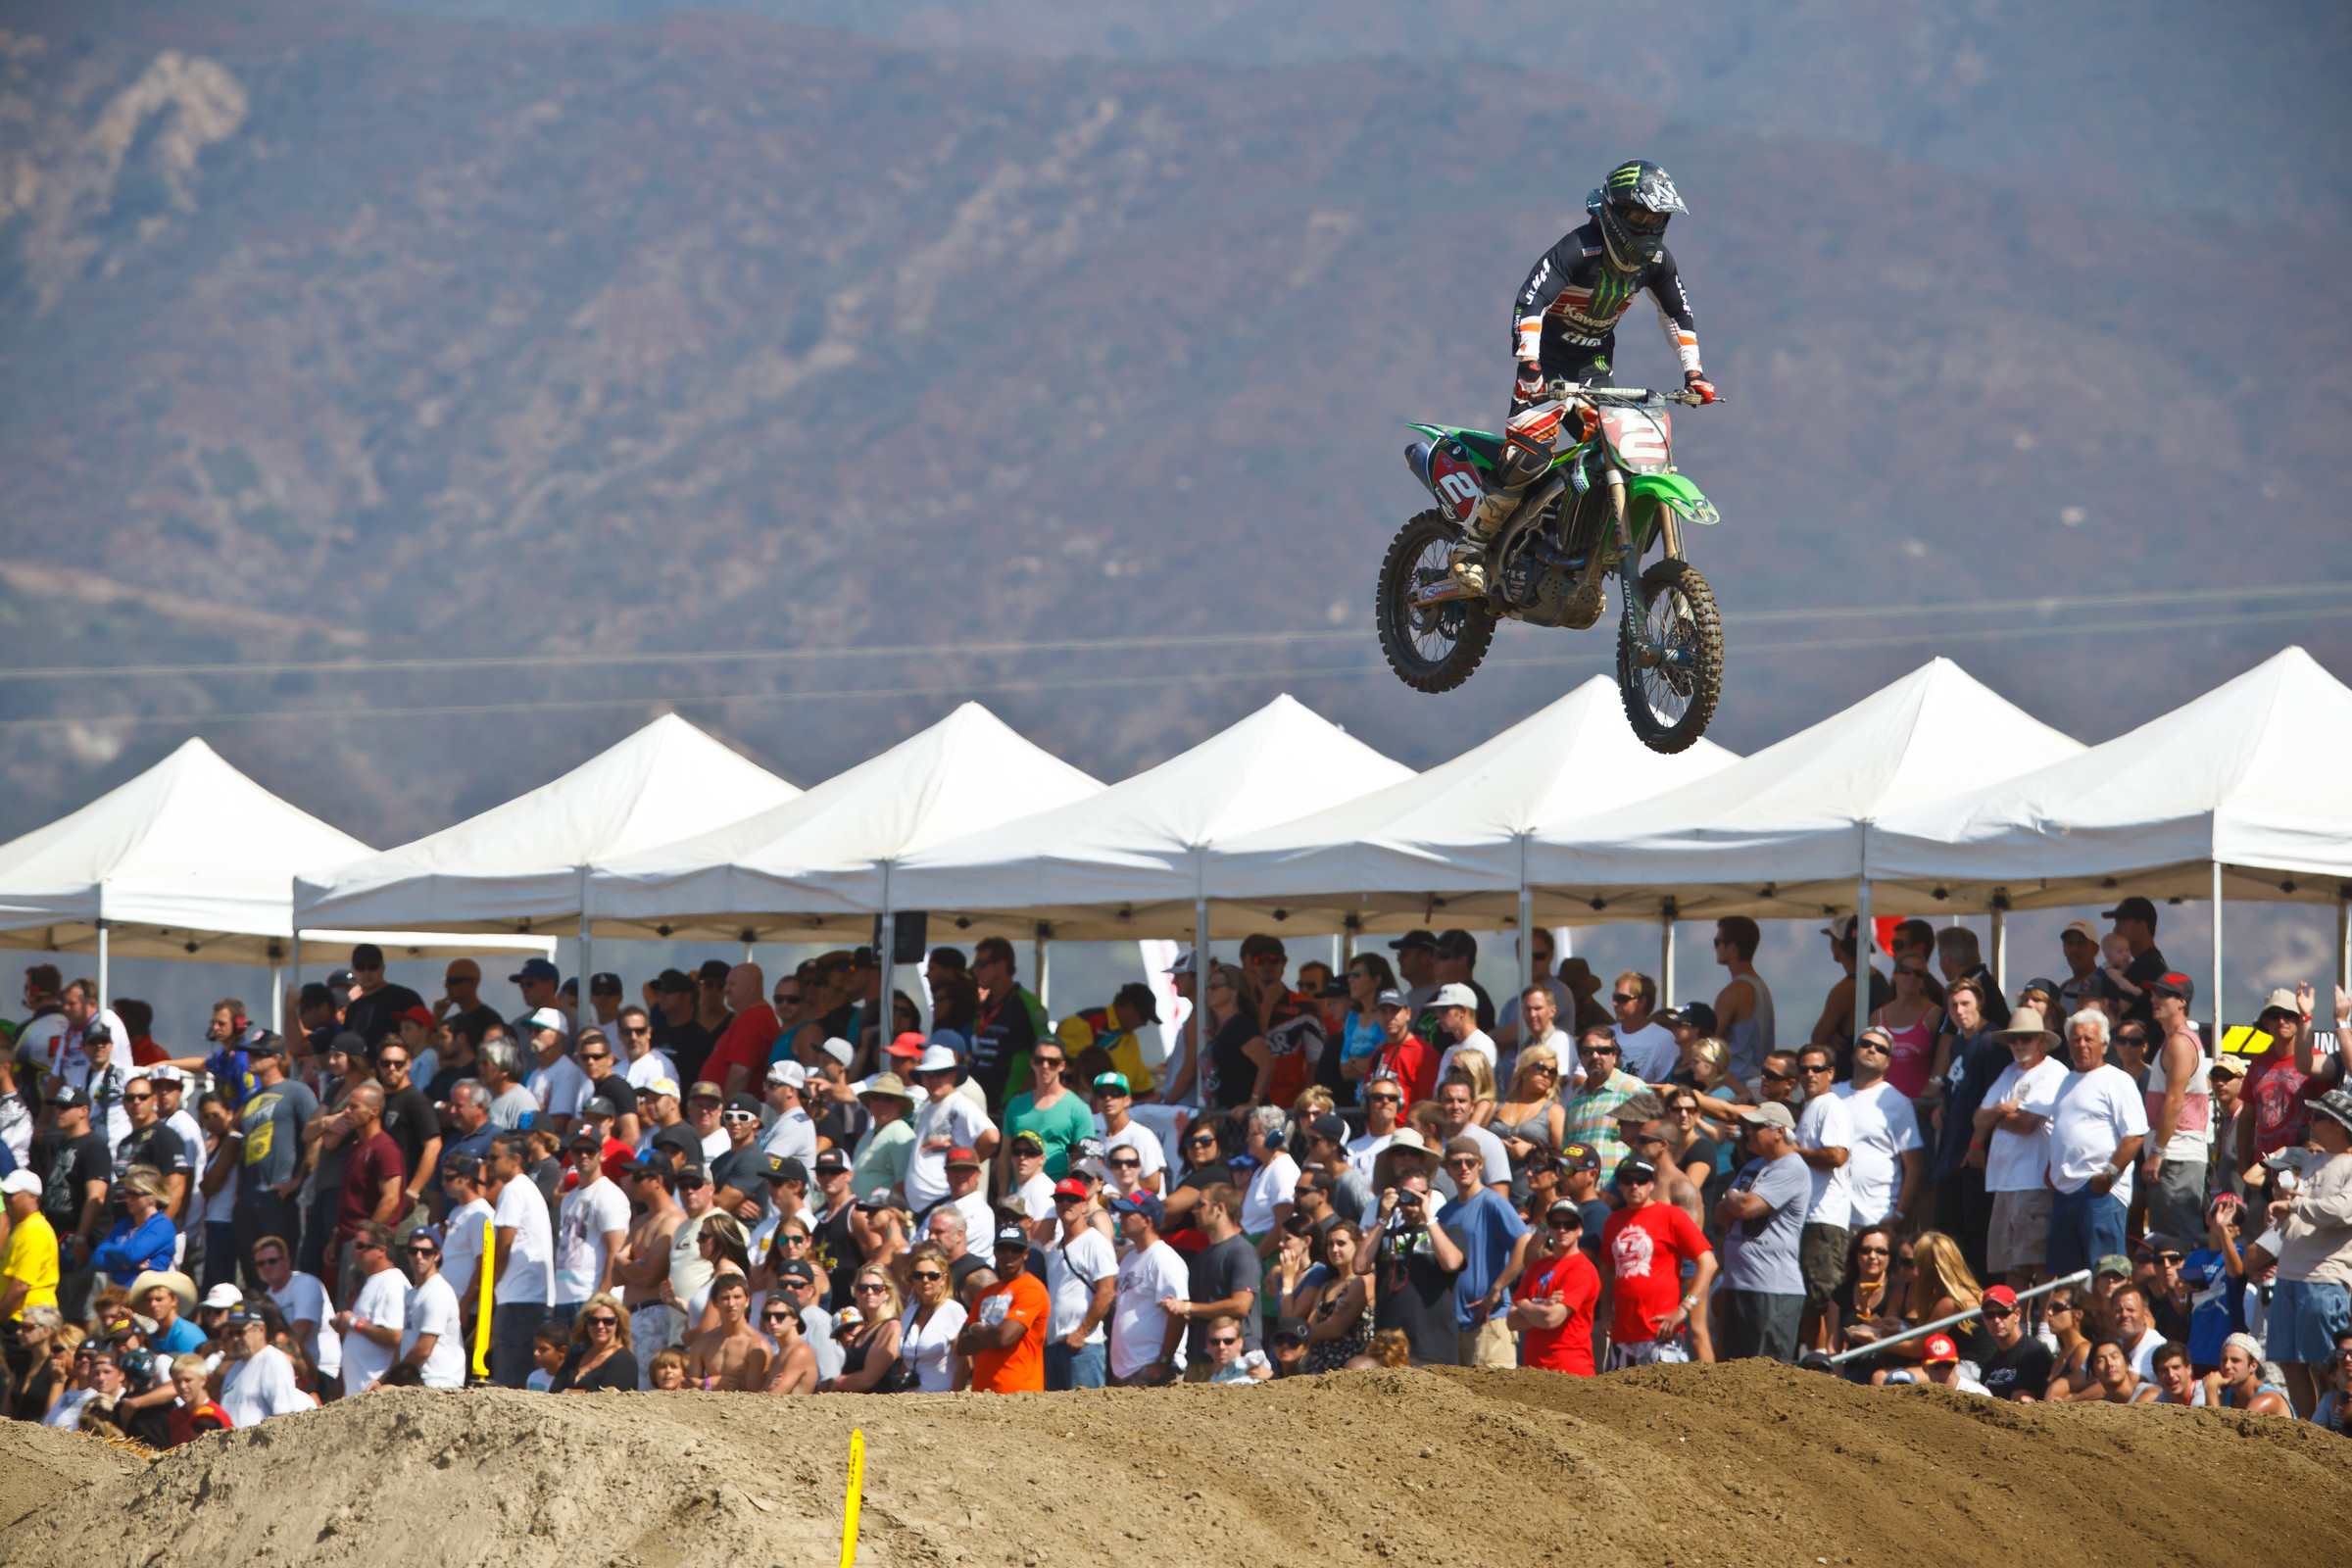 Pala previously served as the season finale of the Lucas Oil Pro Motocross Championship for back-to-back seasons in 2010 and 2011. Get tickets for 2019 today!